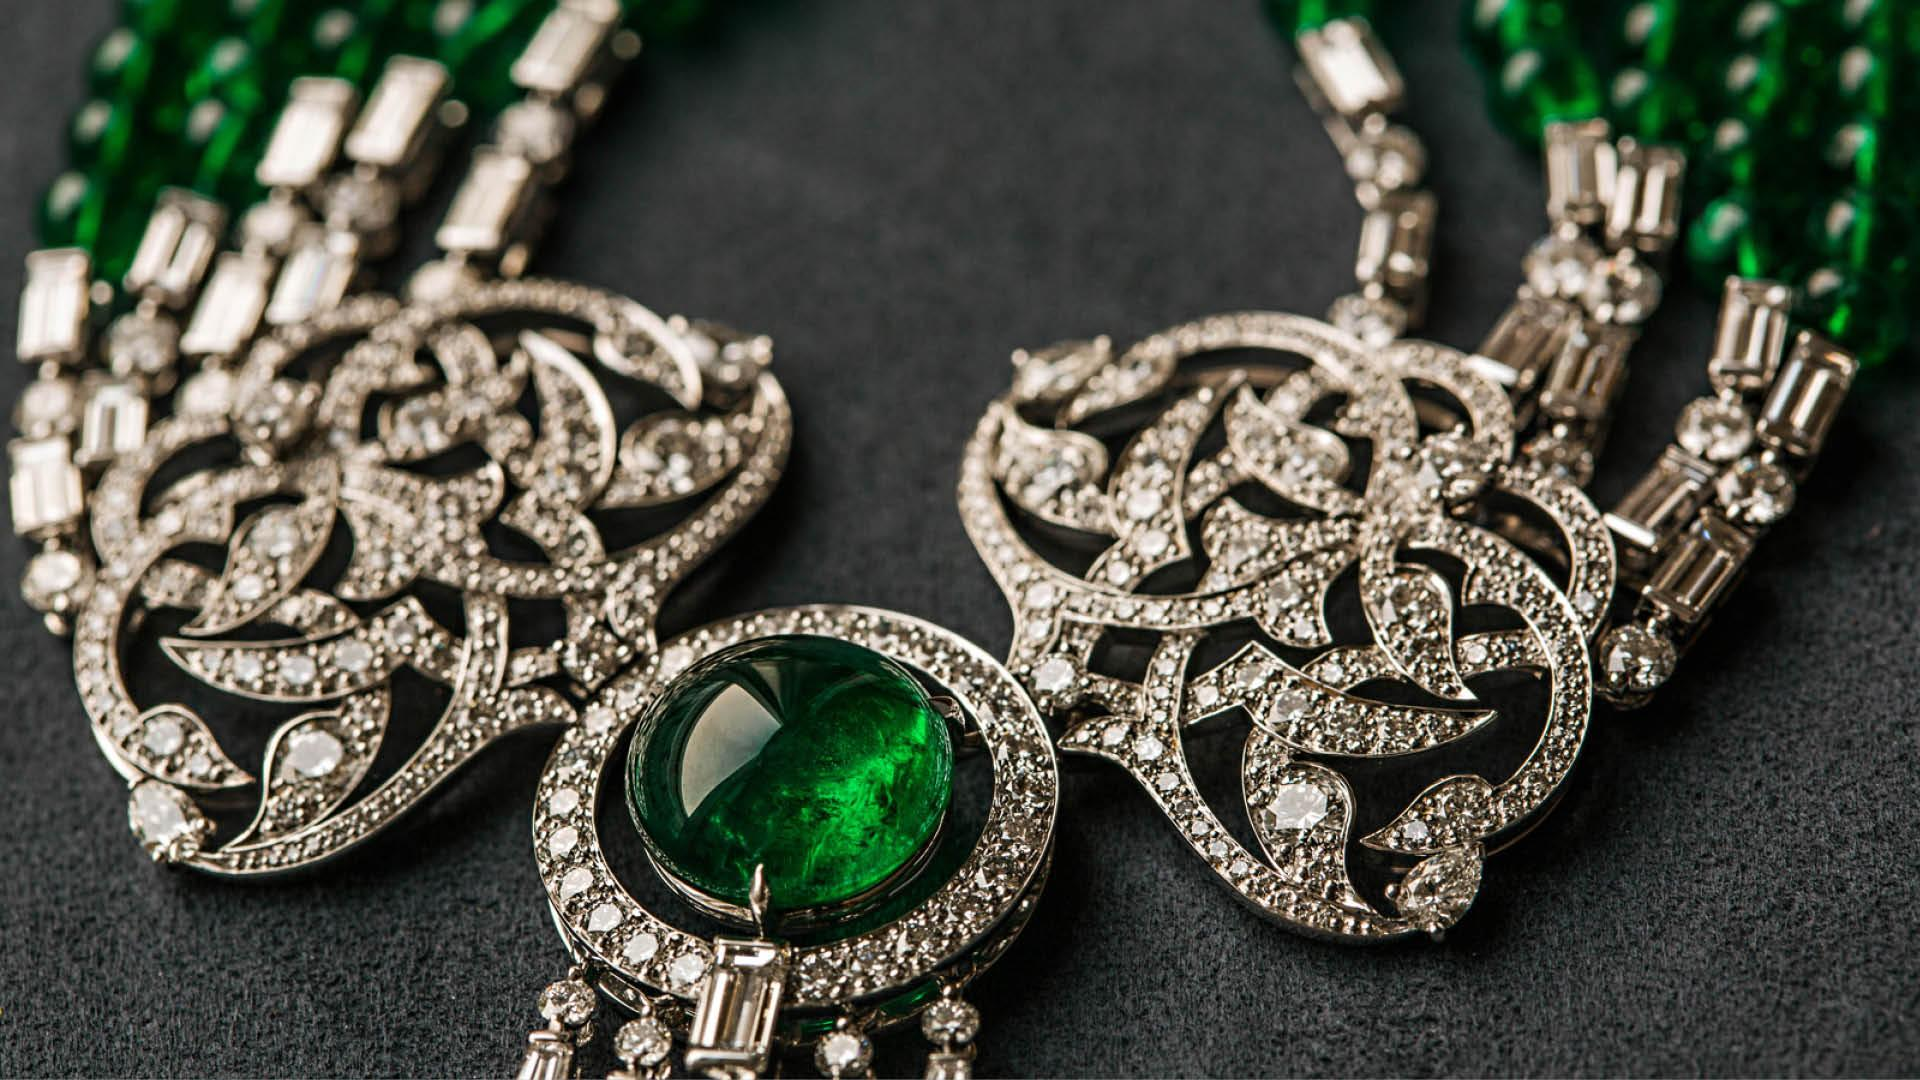 An emerald and diamond necklace by Alkhallafi